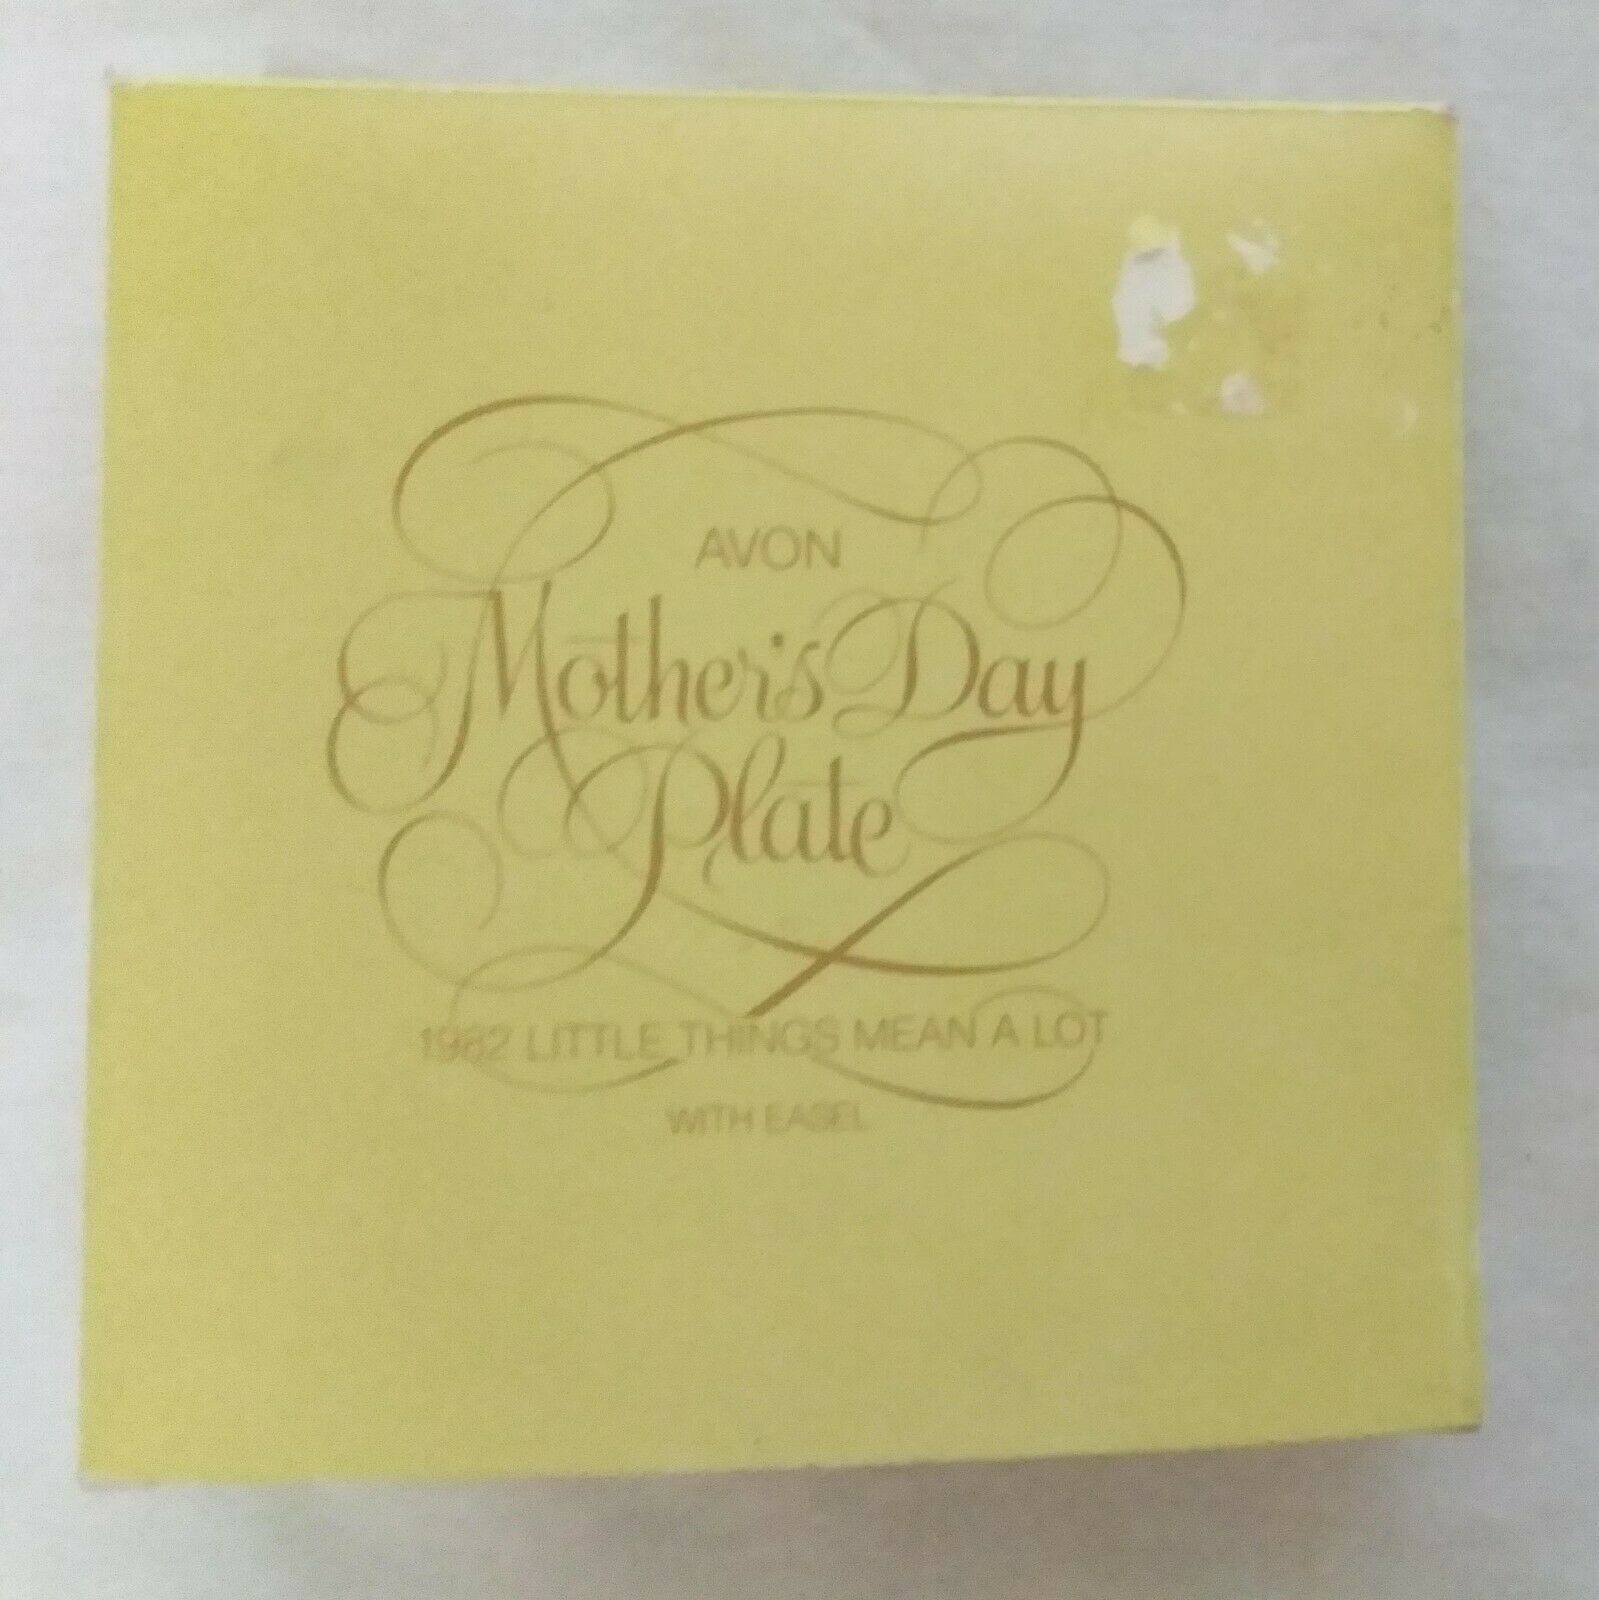 Mother's Day Plate 1982 Little Things Mean a Lot in Box by Avon Vintage